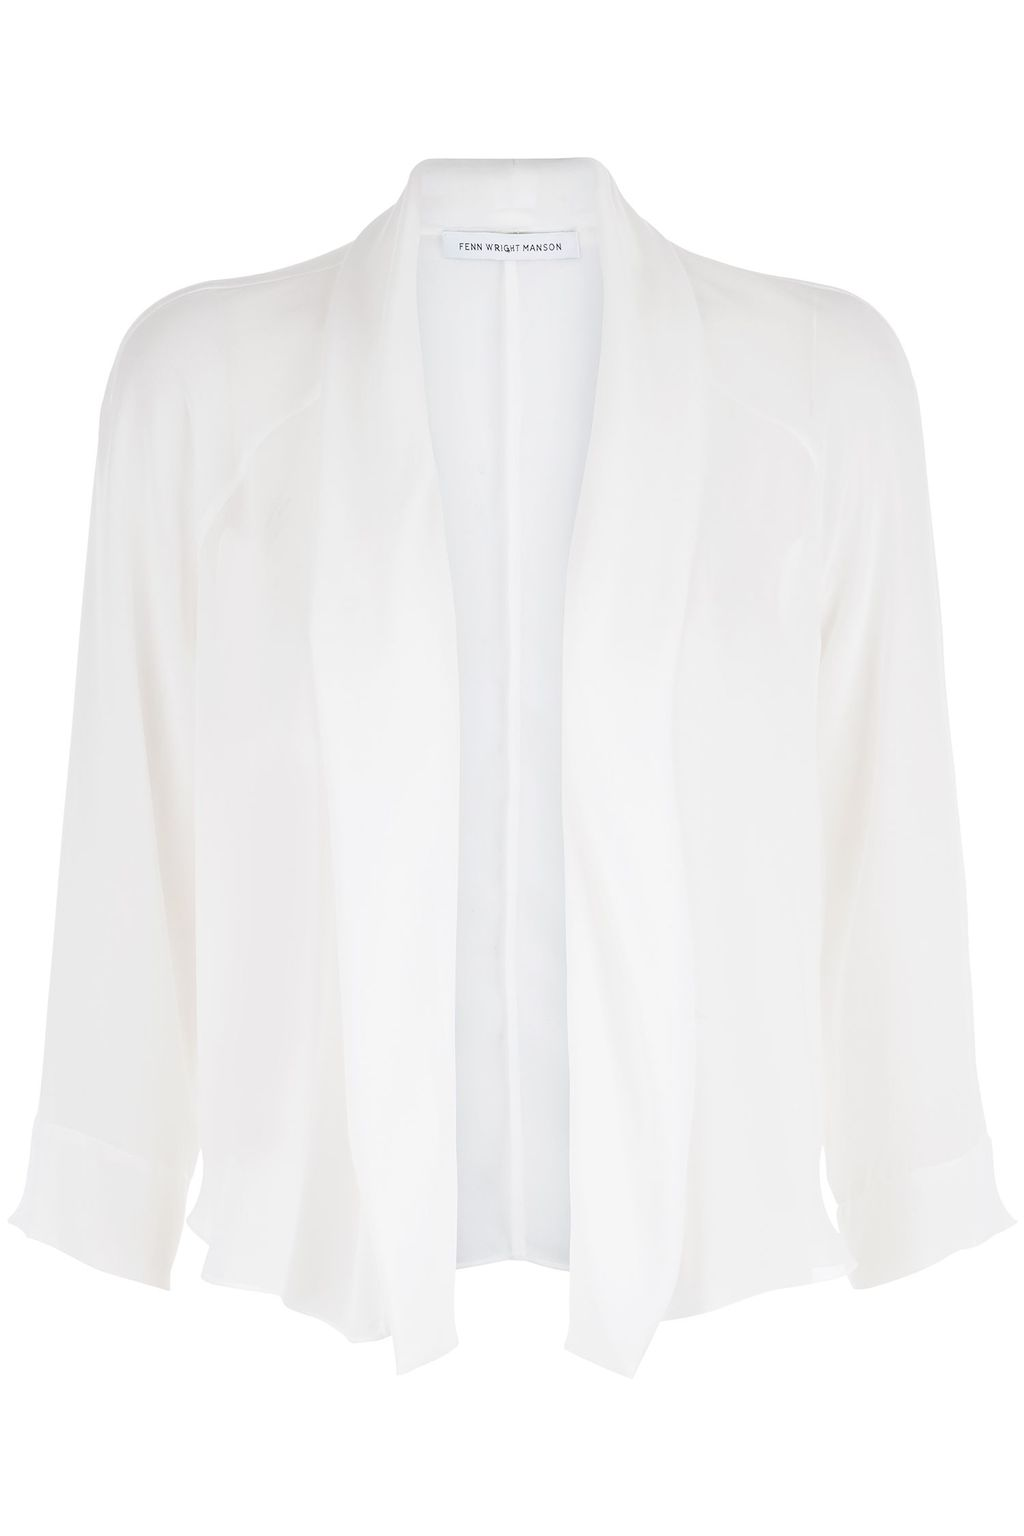 Miro Shrug, Cream - pattern: plain; style: bolero/shrug; length: cropped; neckline: collarless open; predominant colour: white; occasions: casual, creative work; fibres: polyester/polyamide - 100%; fit: slim fit; sleeve length: 3/4 length; sleeve style: standard; texture group: knits/crochet; pattern type: knitted - fine stitch; season: s/s 2016; wardrobe: basic